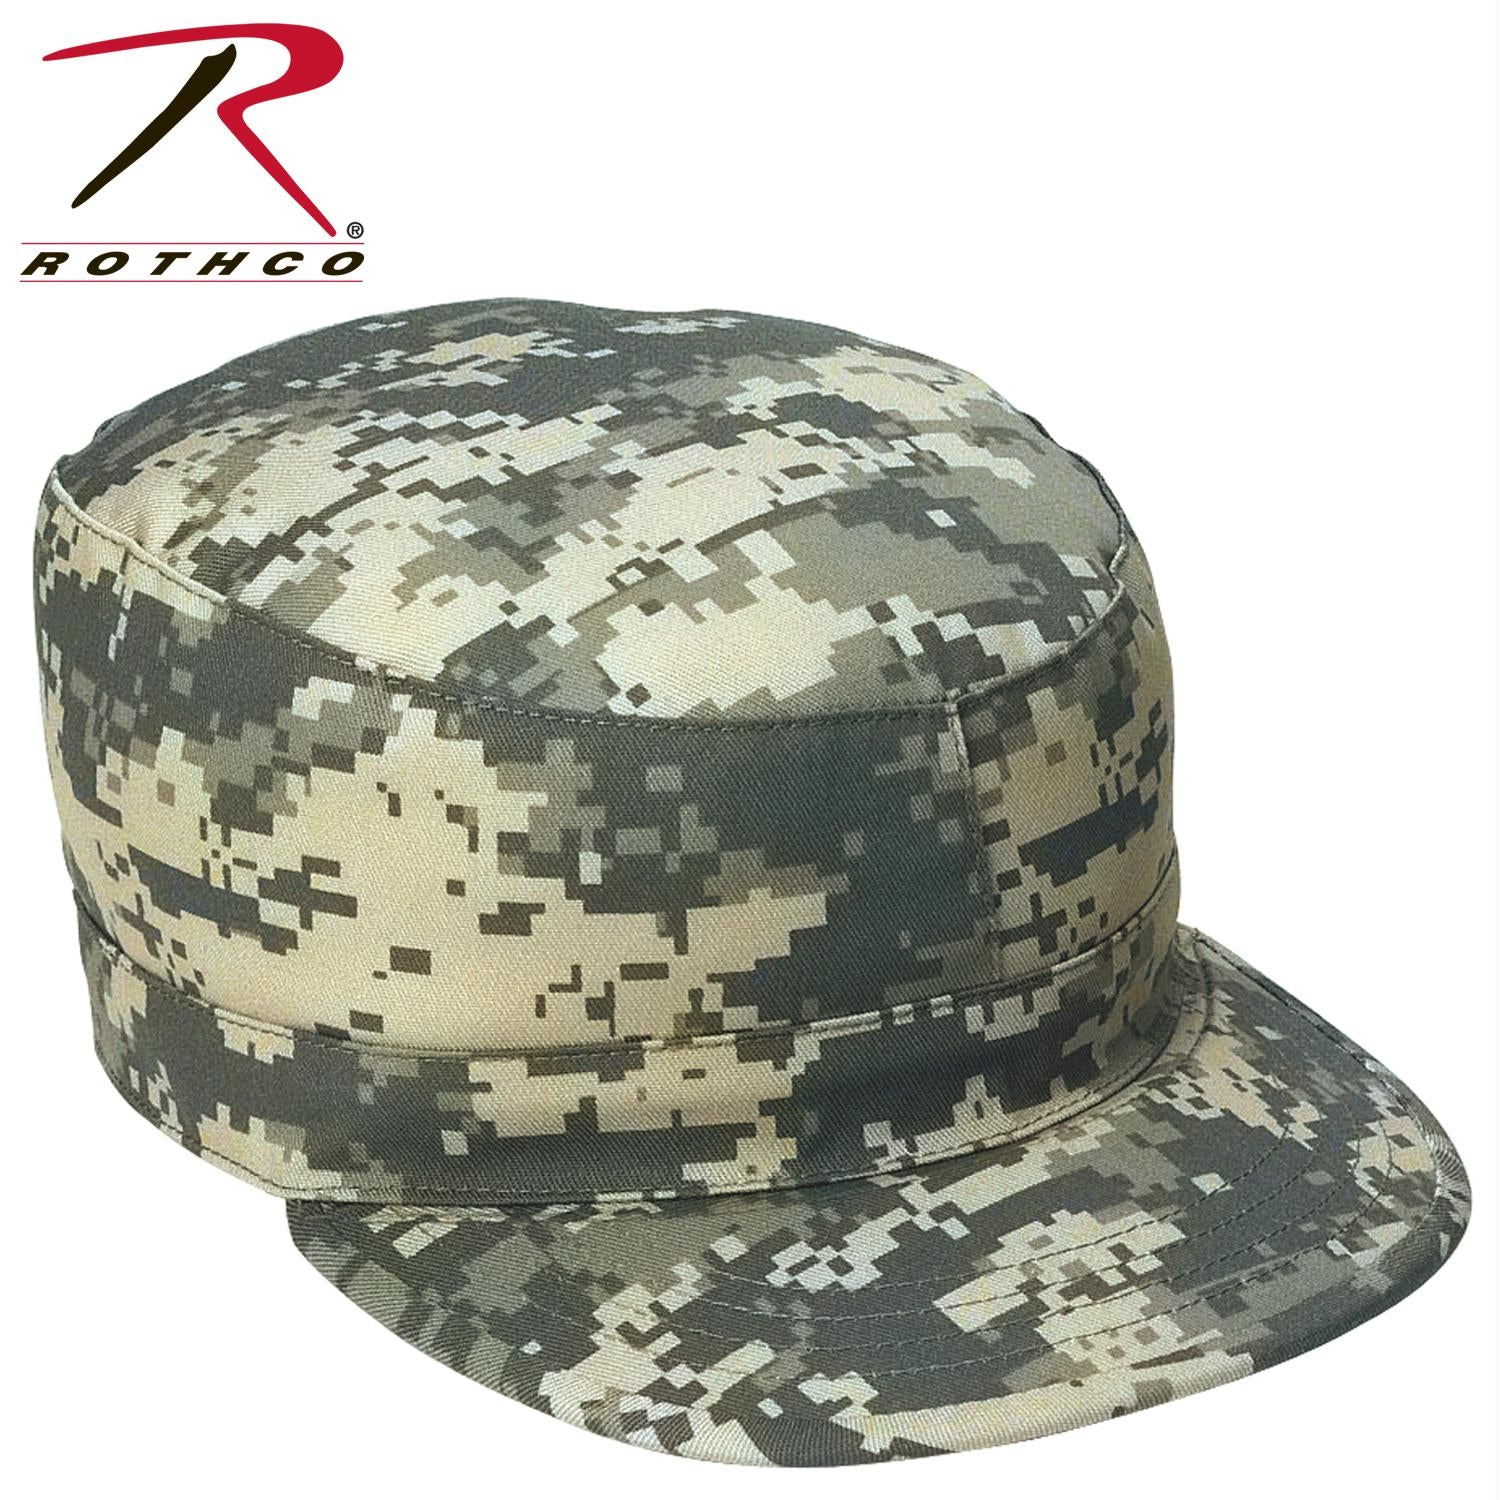 Rothco Camo Fatigue Caps - ACU Digital Camo / L